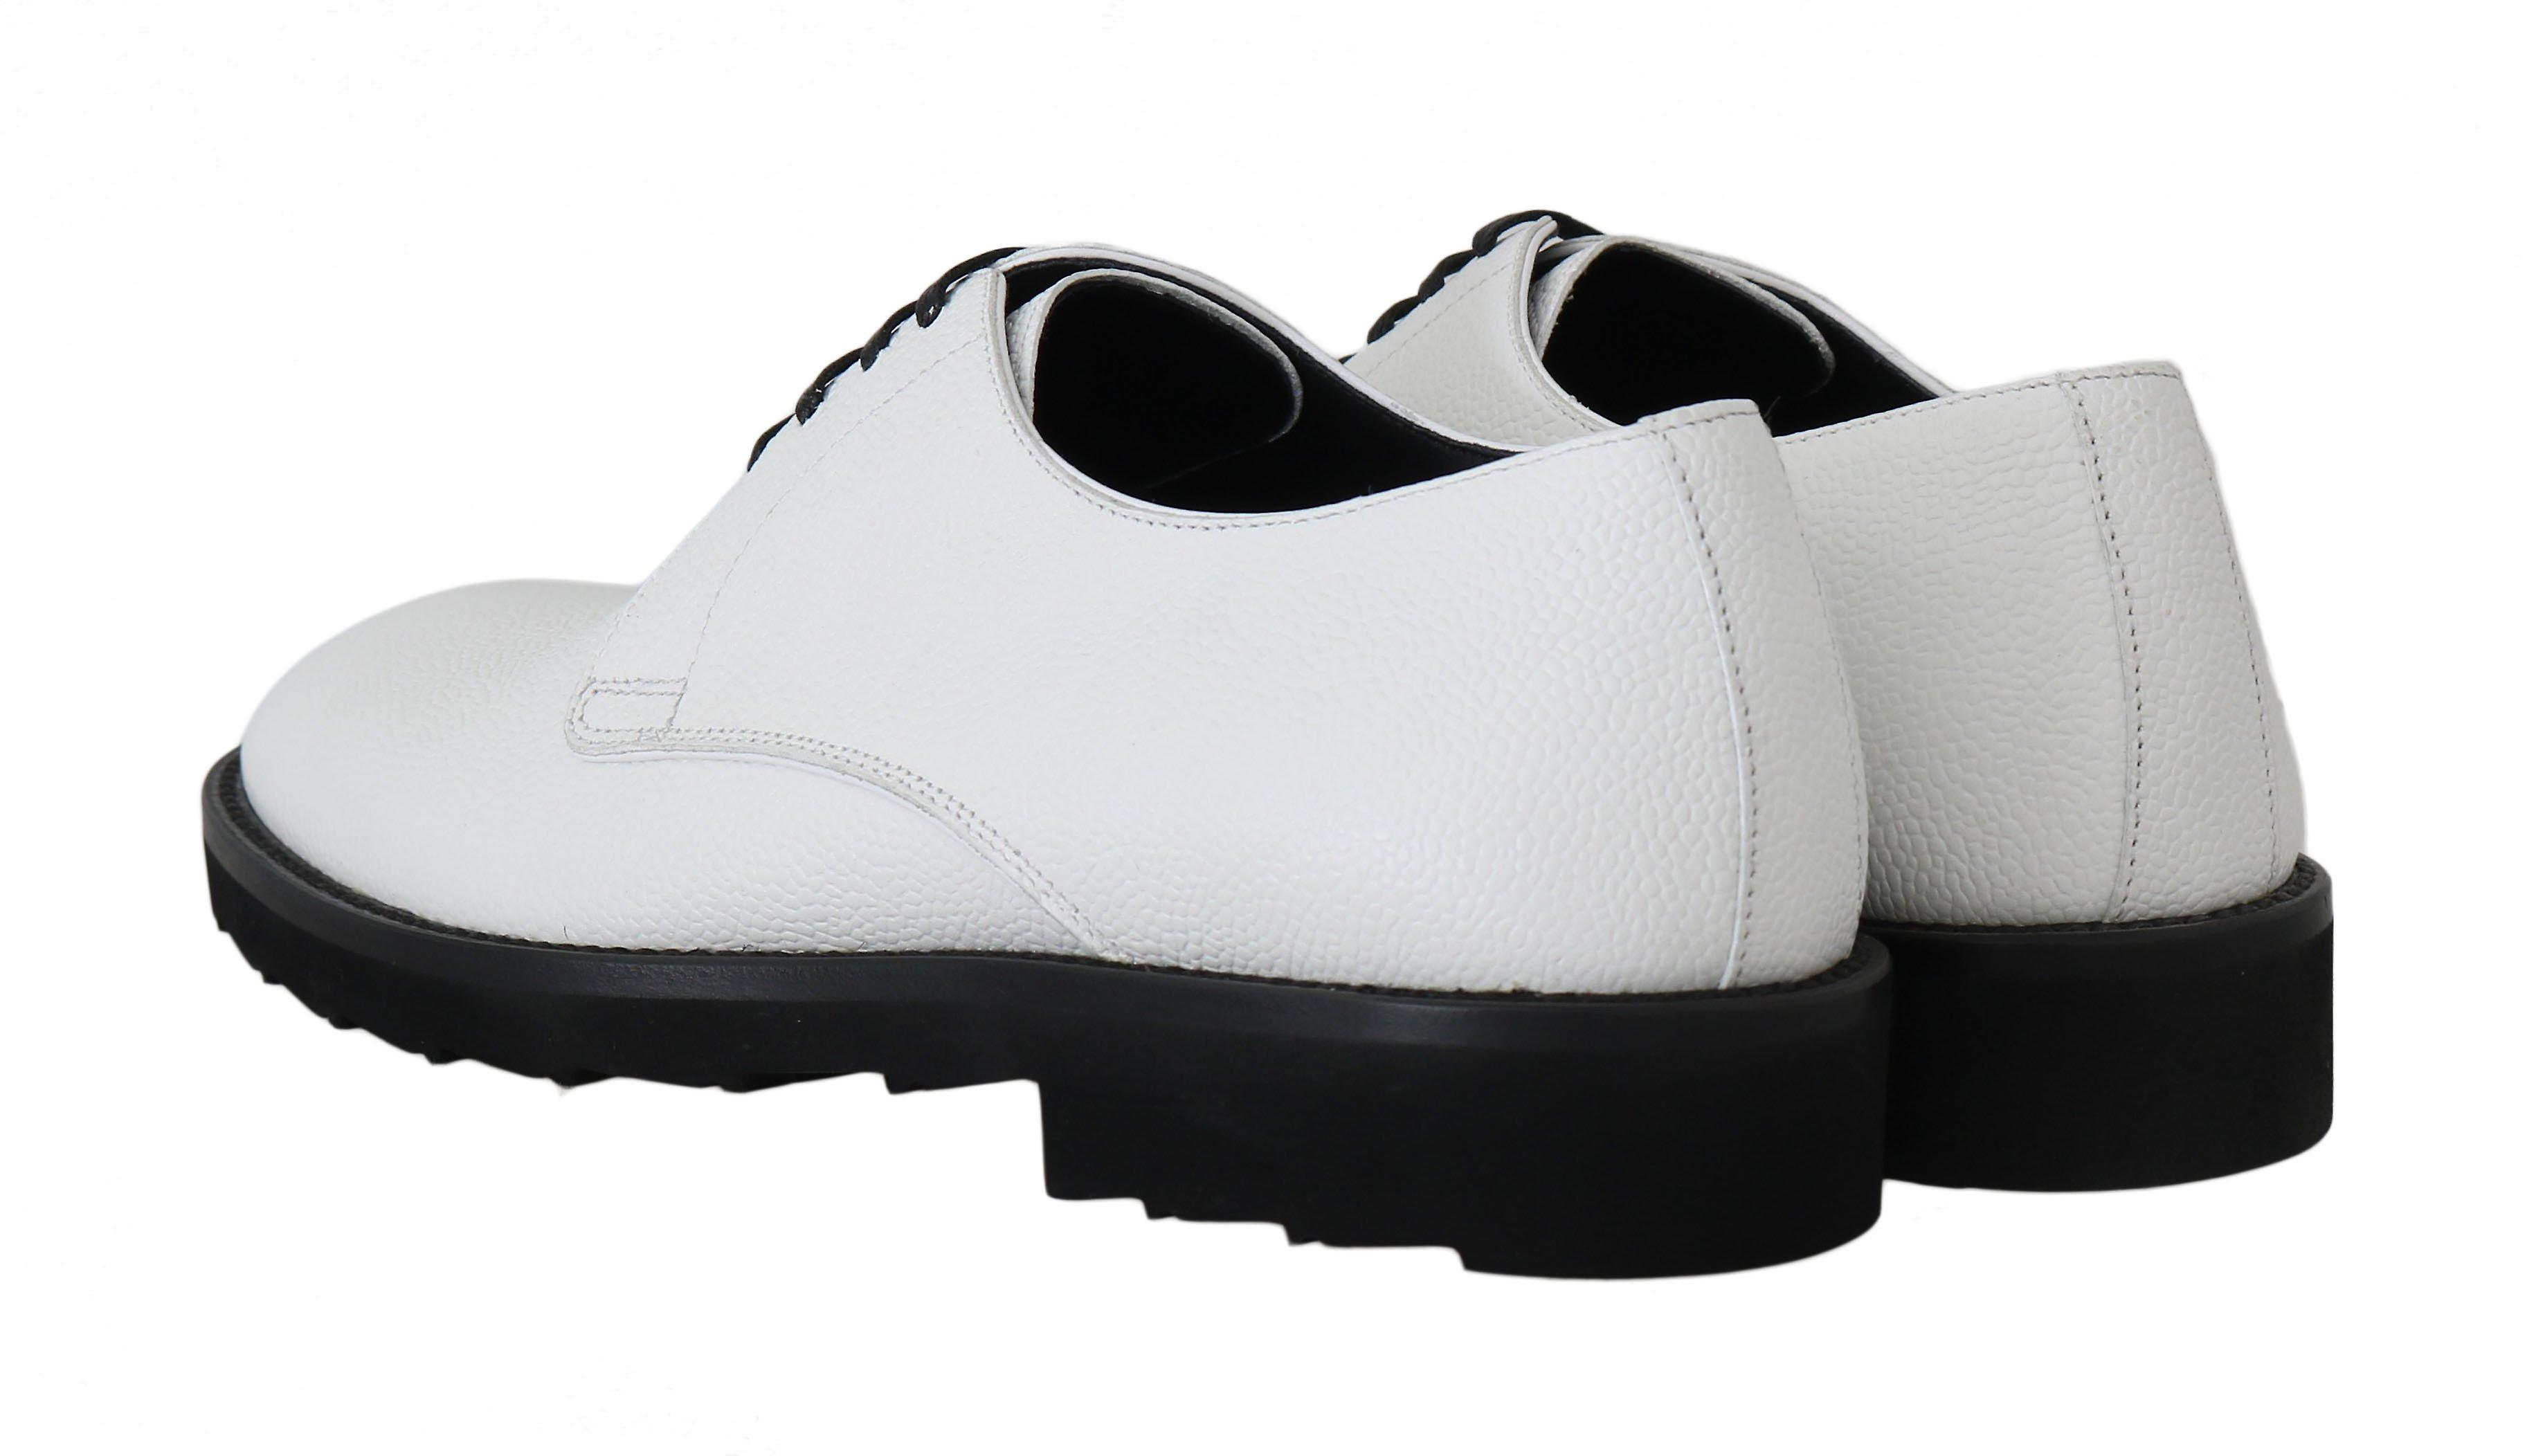 Dolce & Gabbana White Leather Derby Dress Formal Shoes MV2173-45